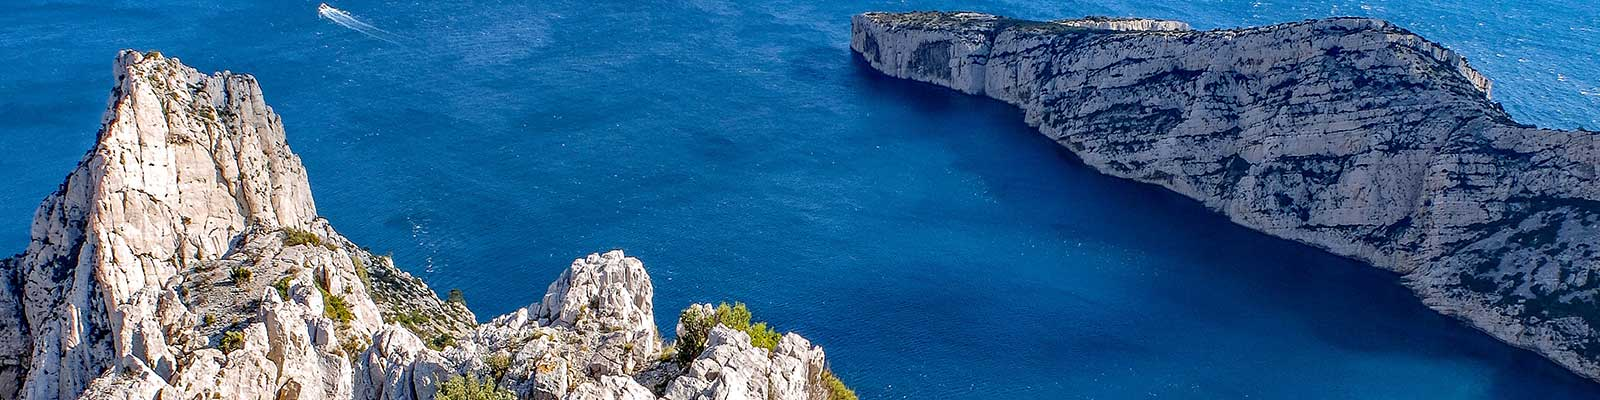 Camping Calanques Marseille And Cassis Holidays Calanques Cassis